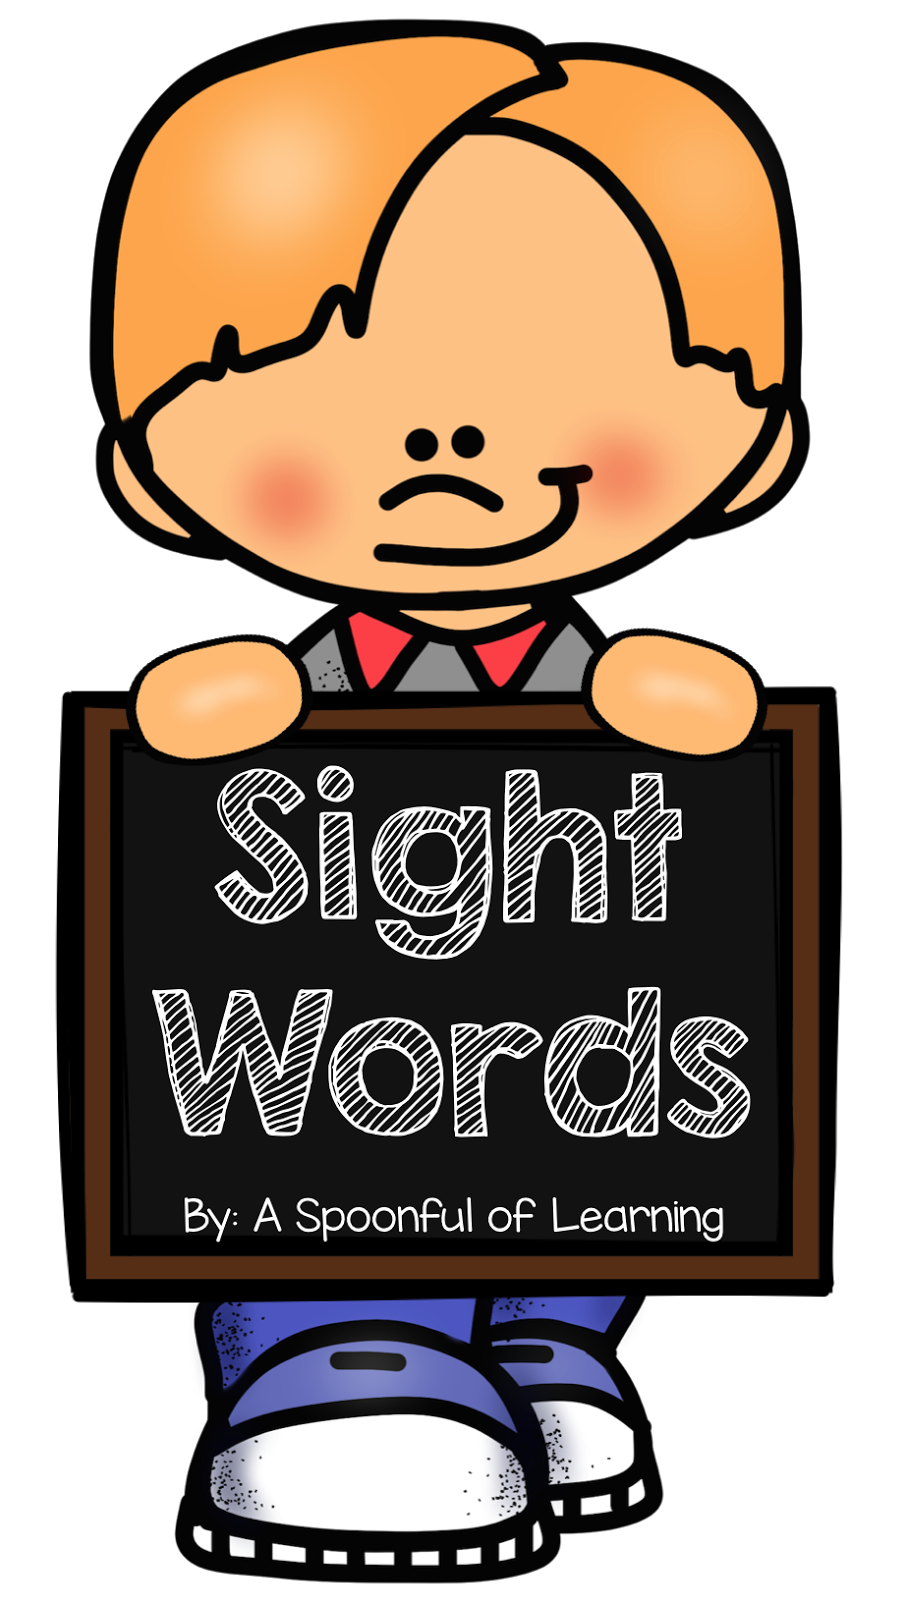 Word clipart sight word Promotes and teaching Helps Spoonful